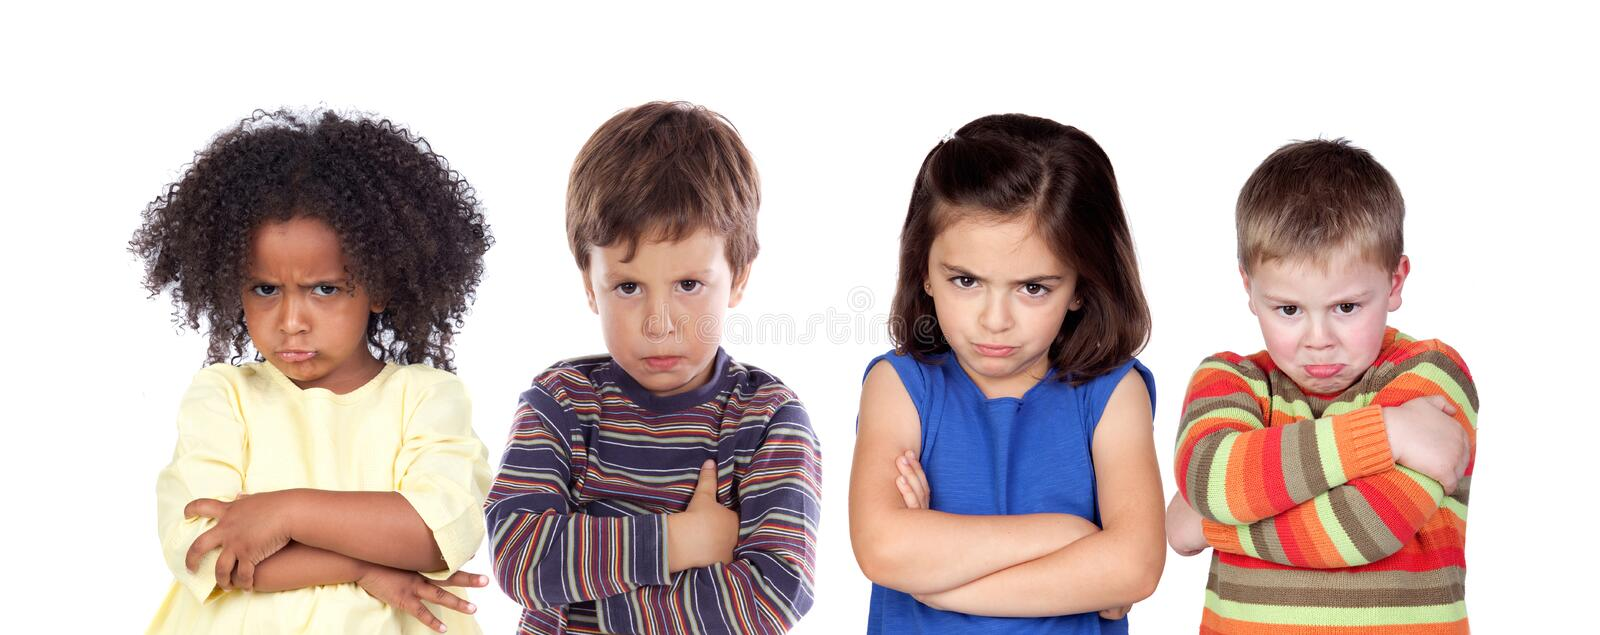 Many angry children royalty free stock image